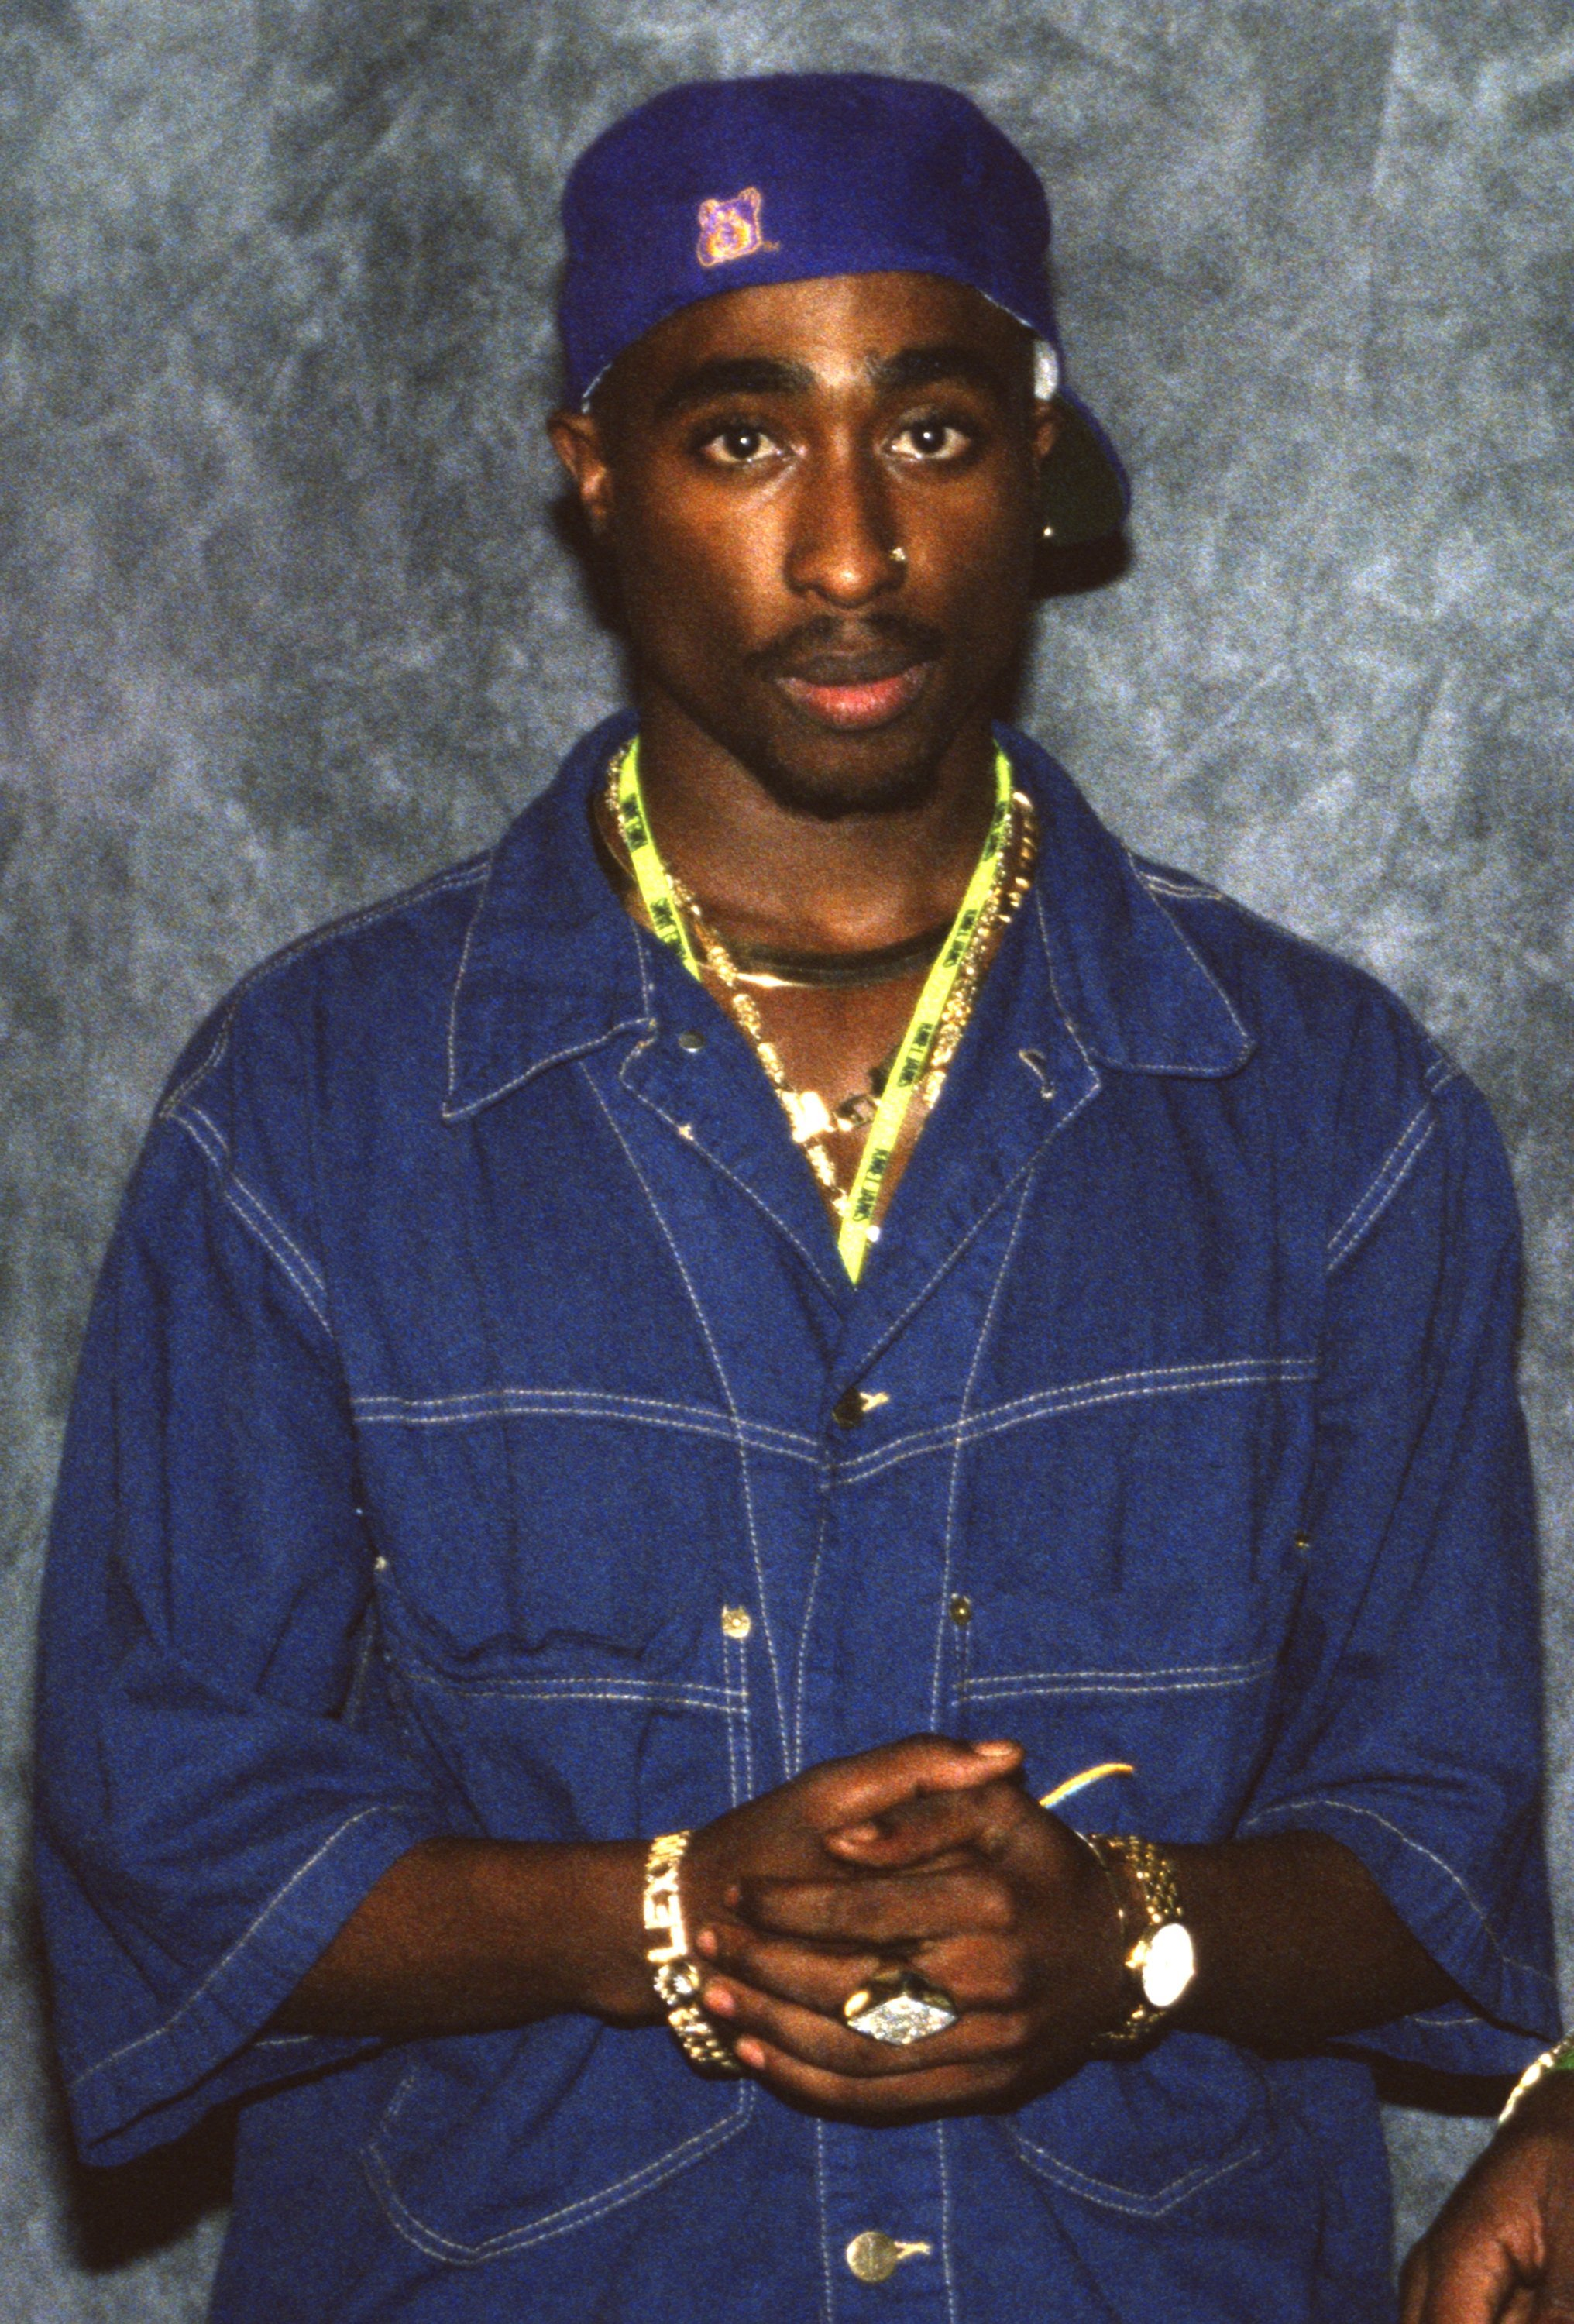 Tupac Shakur attends KMEL Summer Jam at Shoreline Amphitheatre on August 1, 1992. | Photo: GettyImages